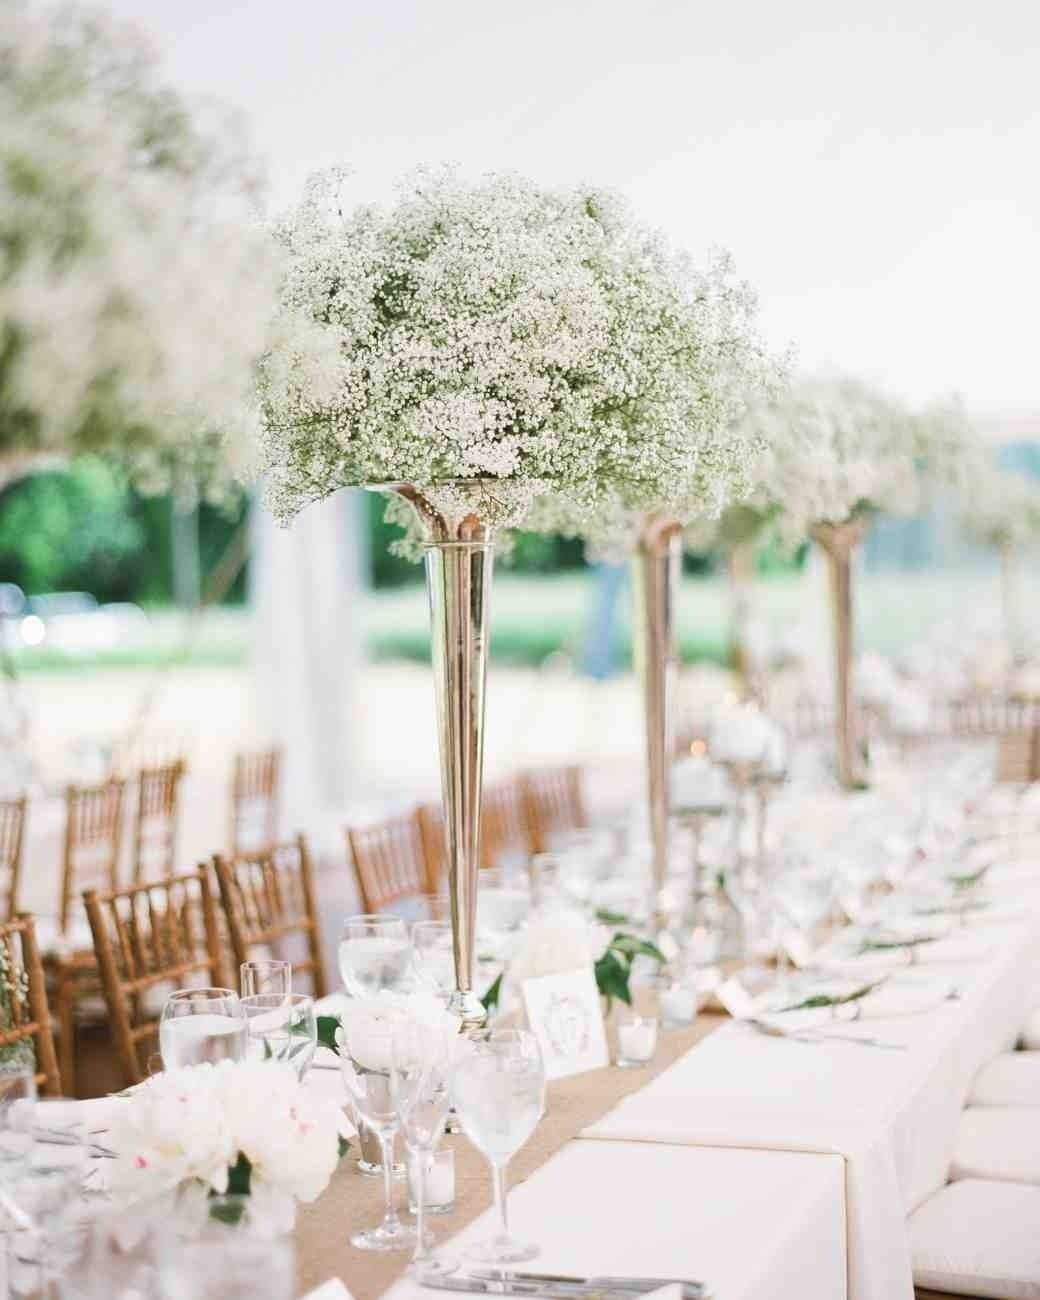 10 Beautiful Affordable Wedding Ideas Low Budget affordable wedding centerpieces that still look elevated martha